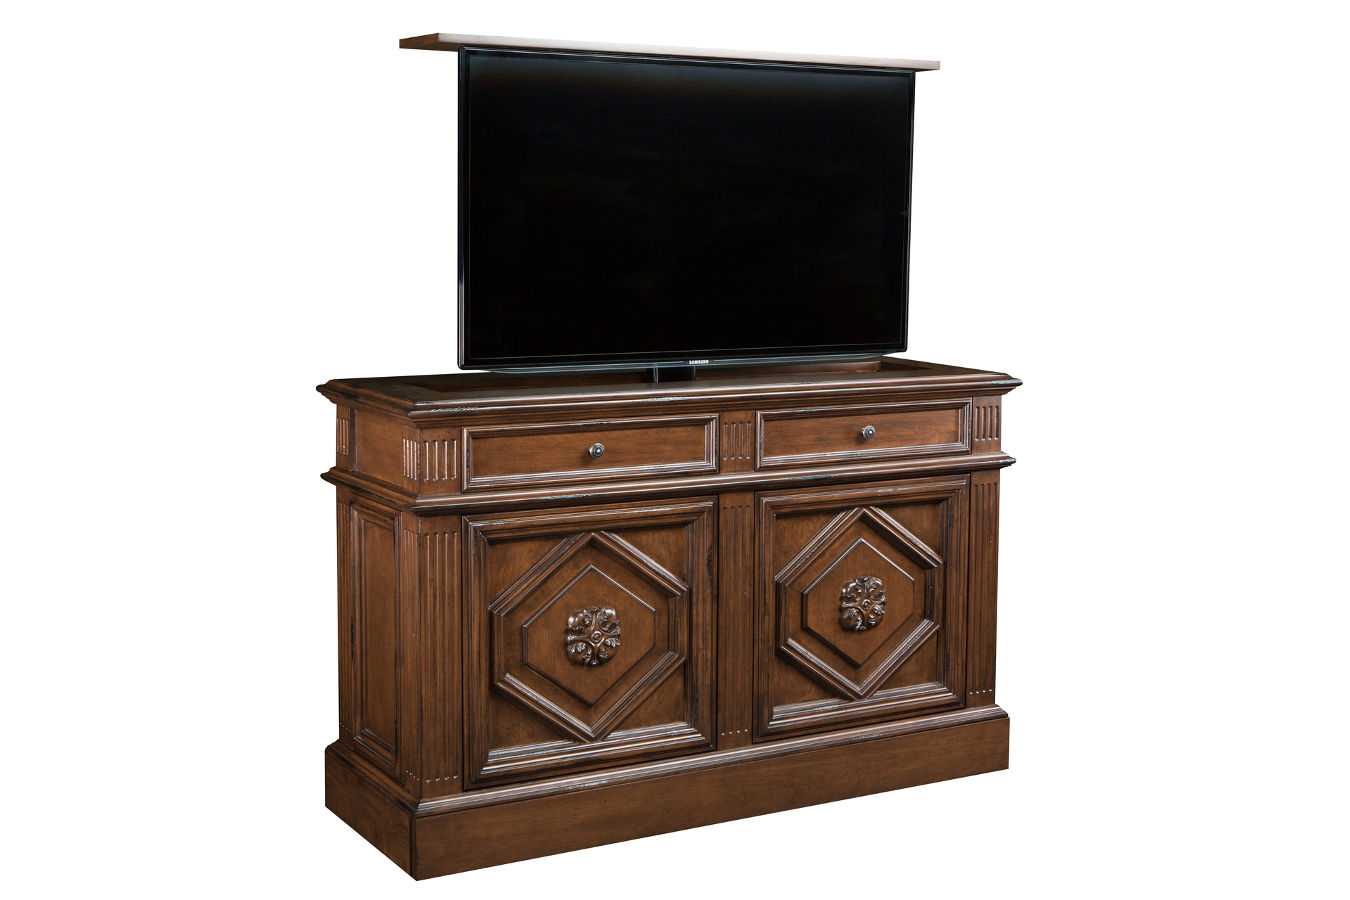 tv lift furniture montage motorized tv lift cabinet. Black Bedroom Furniture Sets. Home Design Ideas